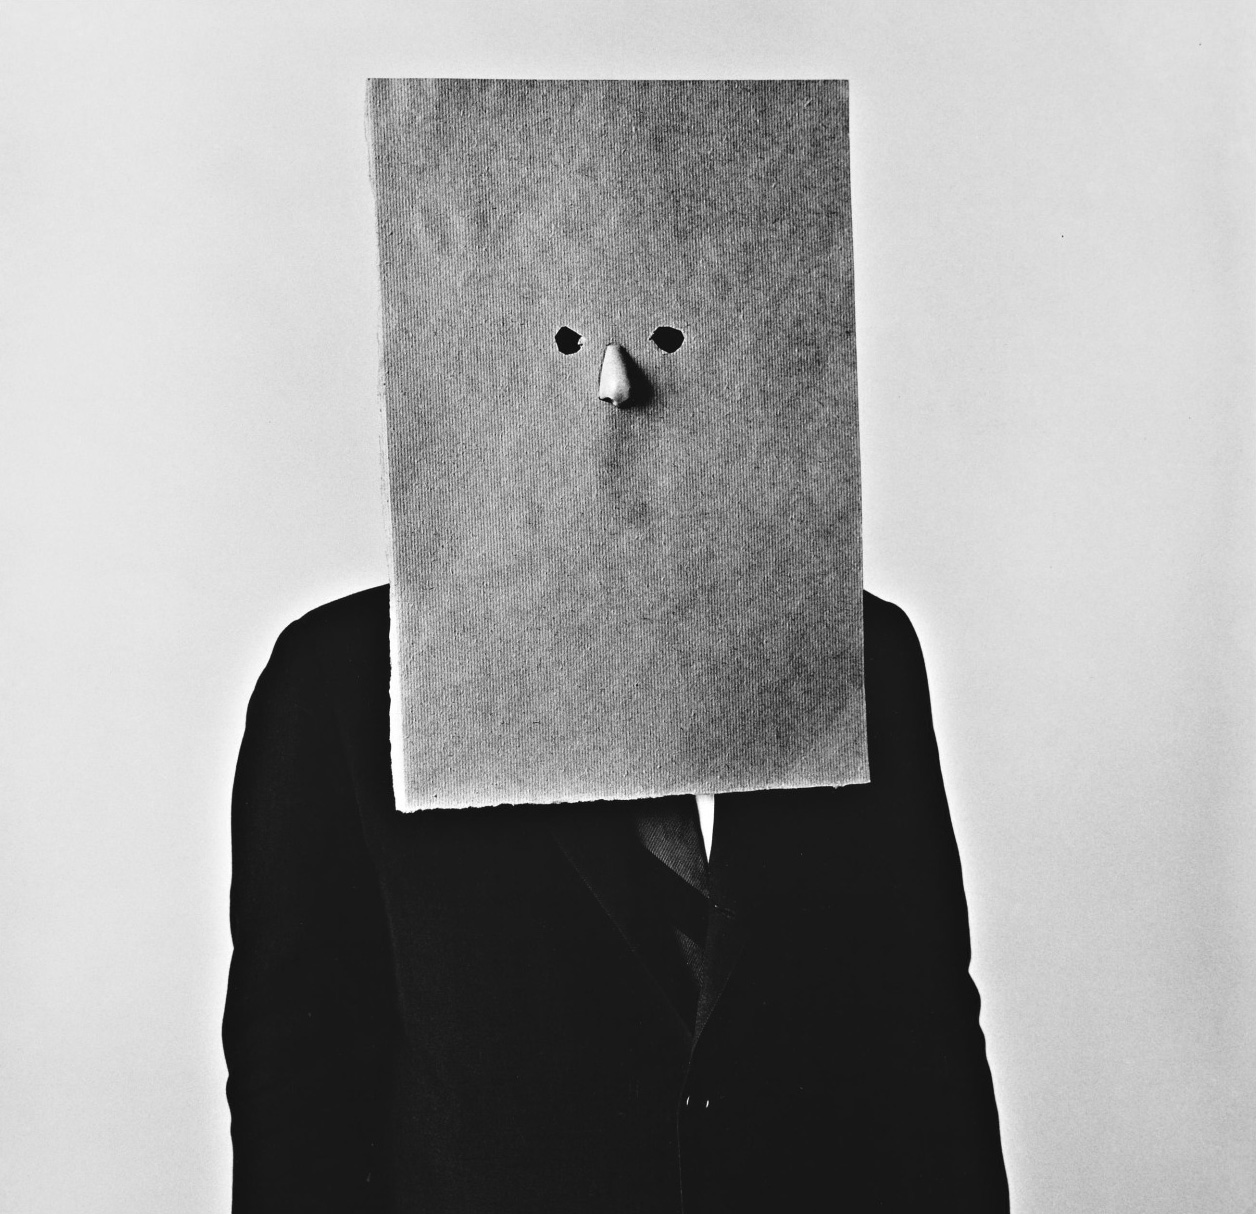 Saul Steinberg – masques